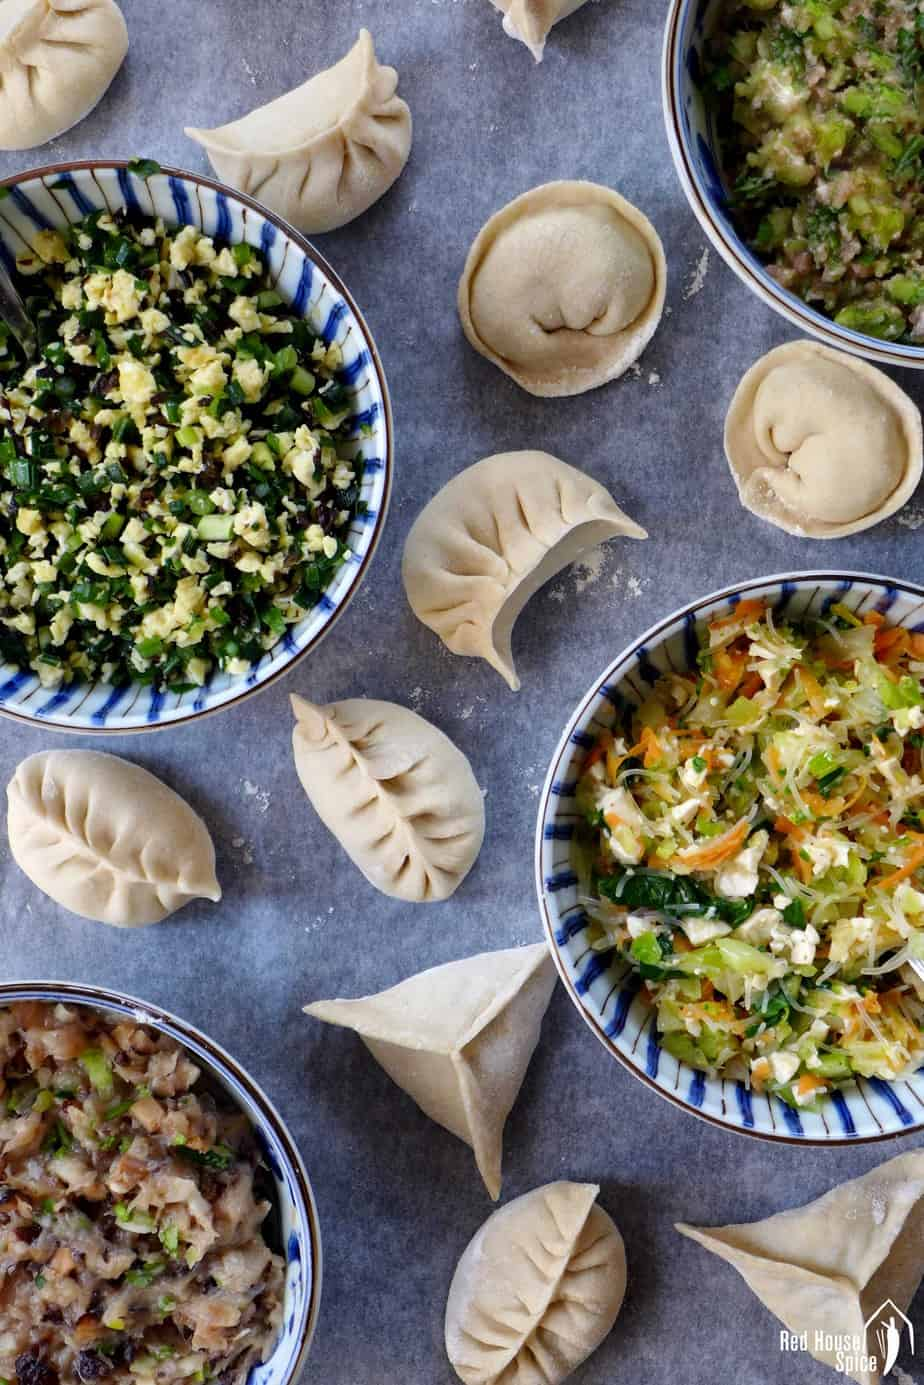 Four bowls of different dumpling fillings and some dumplings in different shape.